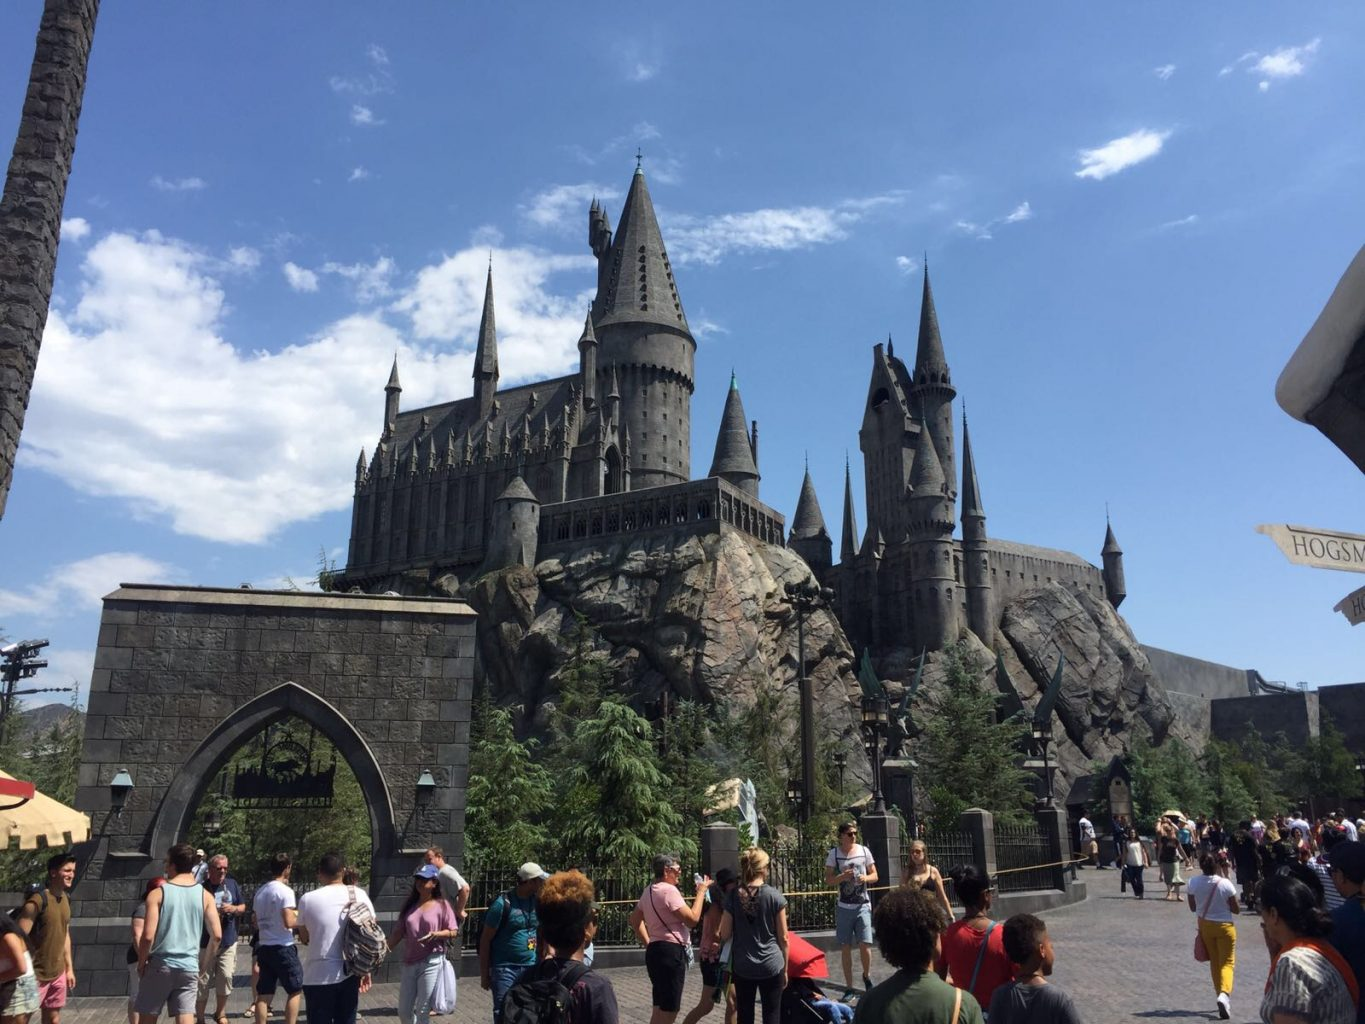 Hogwarts en El Mundo mágico de Harry Potter Universal Studios Hollywood